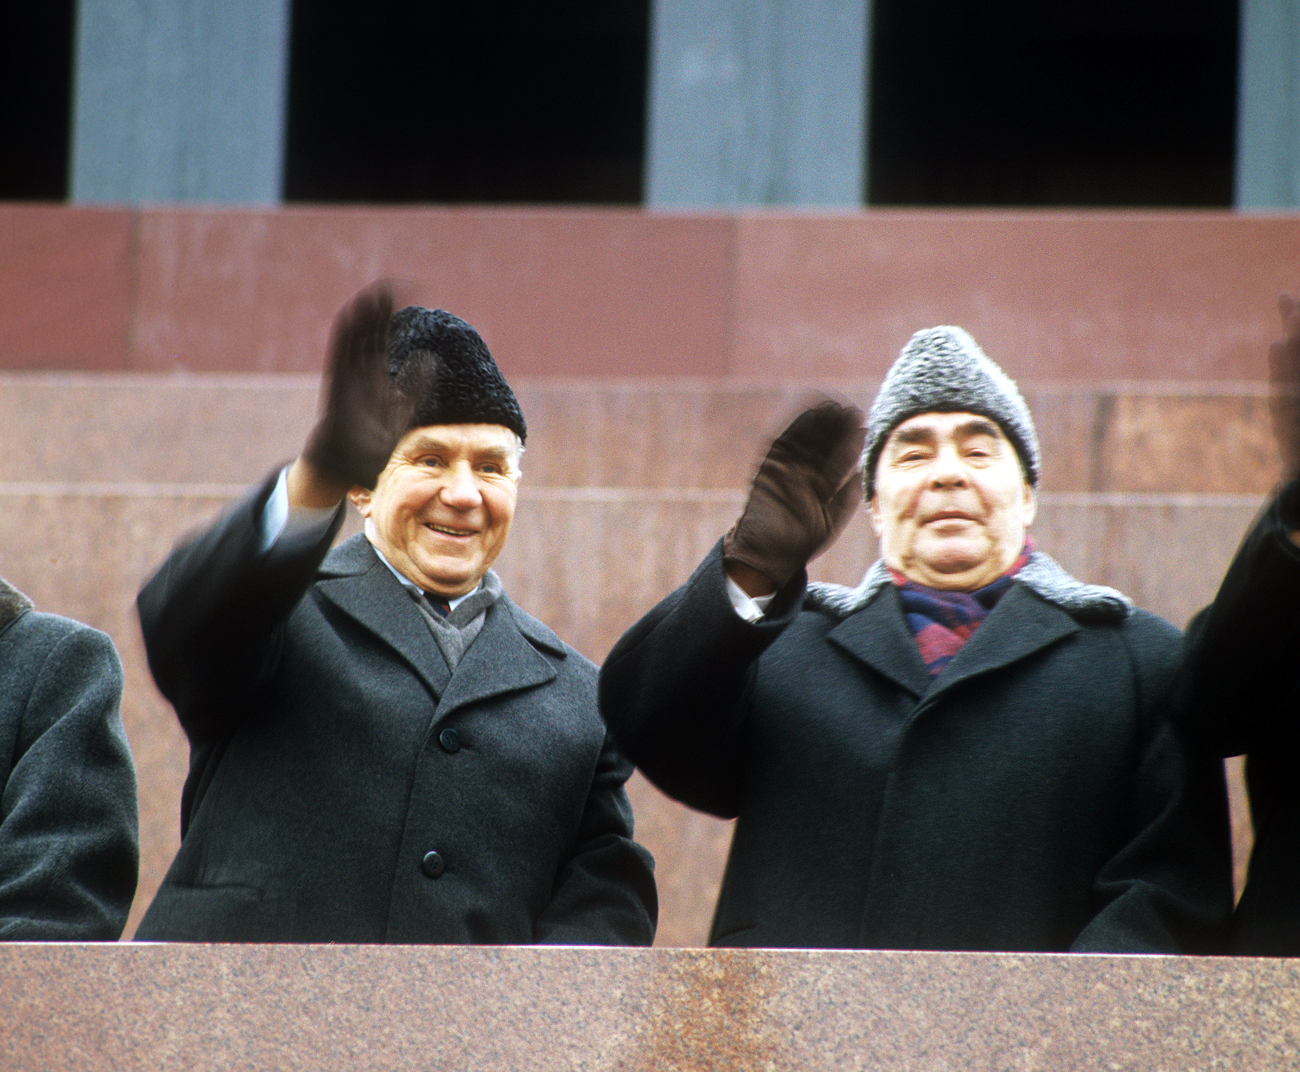 Chairman of the Council of Ministers Alexei Kosygin and General Secretary of the Central Committee of the Communist Party of the Soviet Union Leonid Brezhnev (L-R) seen on the tribune of Lenin's Mausoleum during the demonstration on the Red Square. Source: Vladimir Musaelyan/TASS